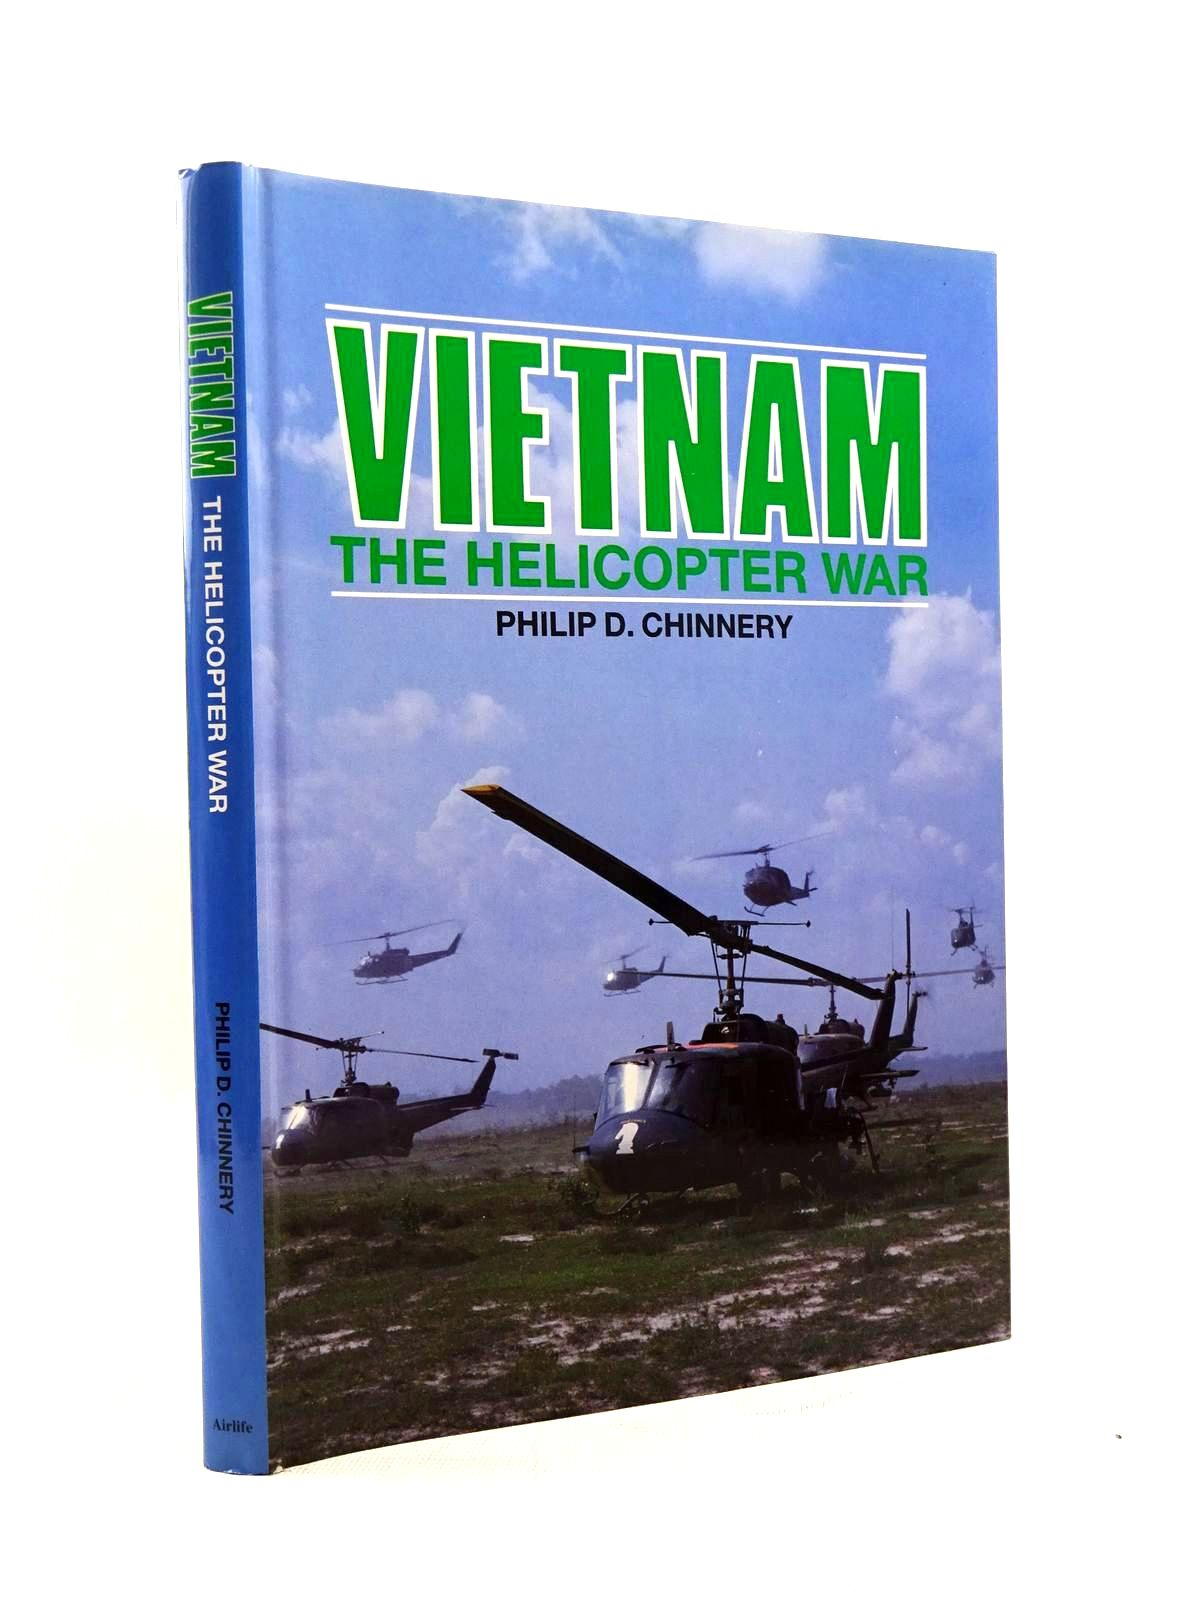 Photo of VIETNAM THE HELICOPTER WAR written by Chinnery, Philip D. published by Airlife (STOCK CODE: 1816009)  for sale by Stella & Rose's Books